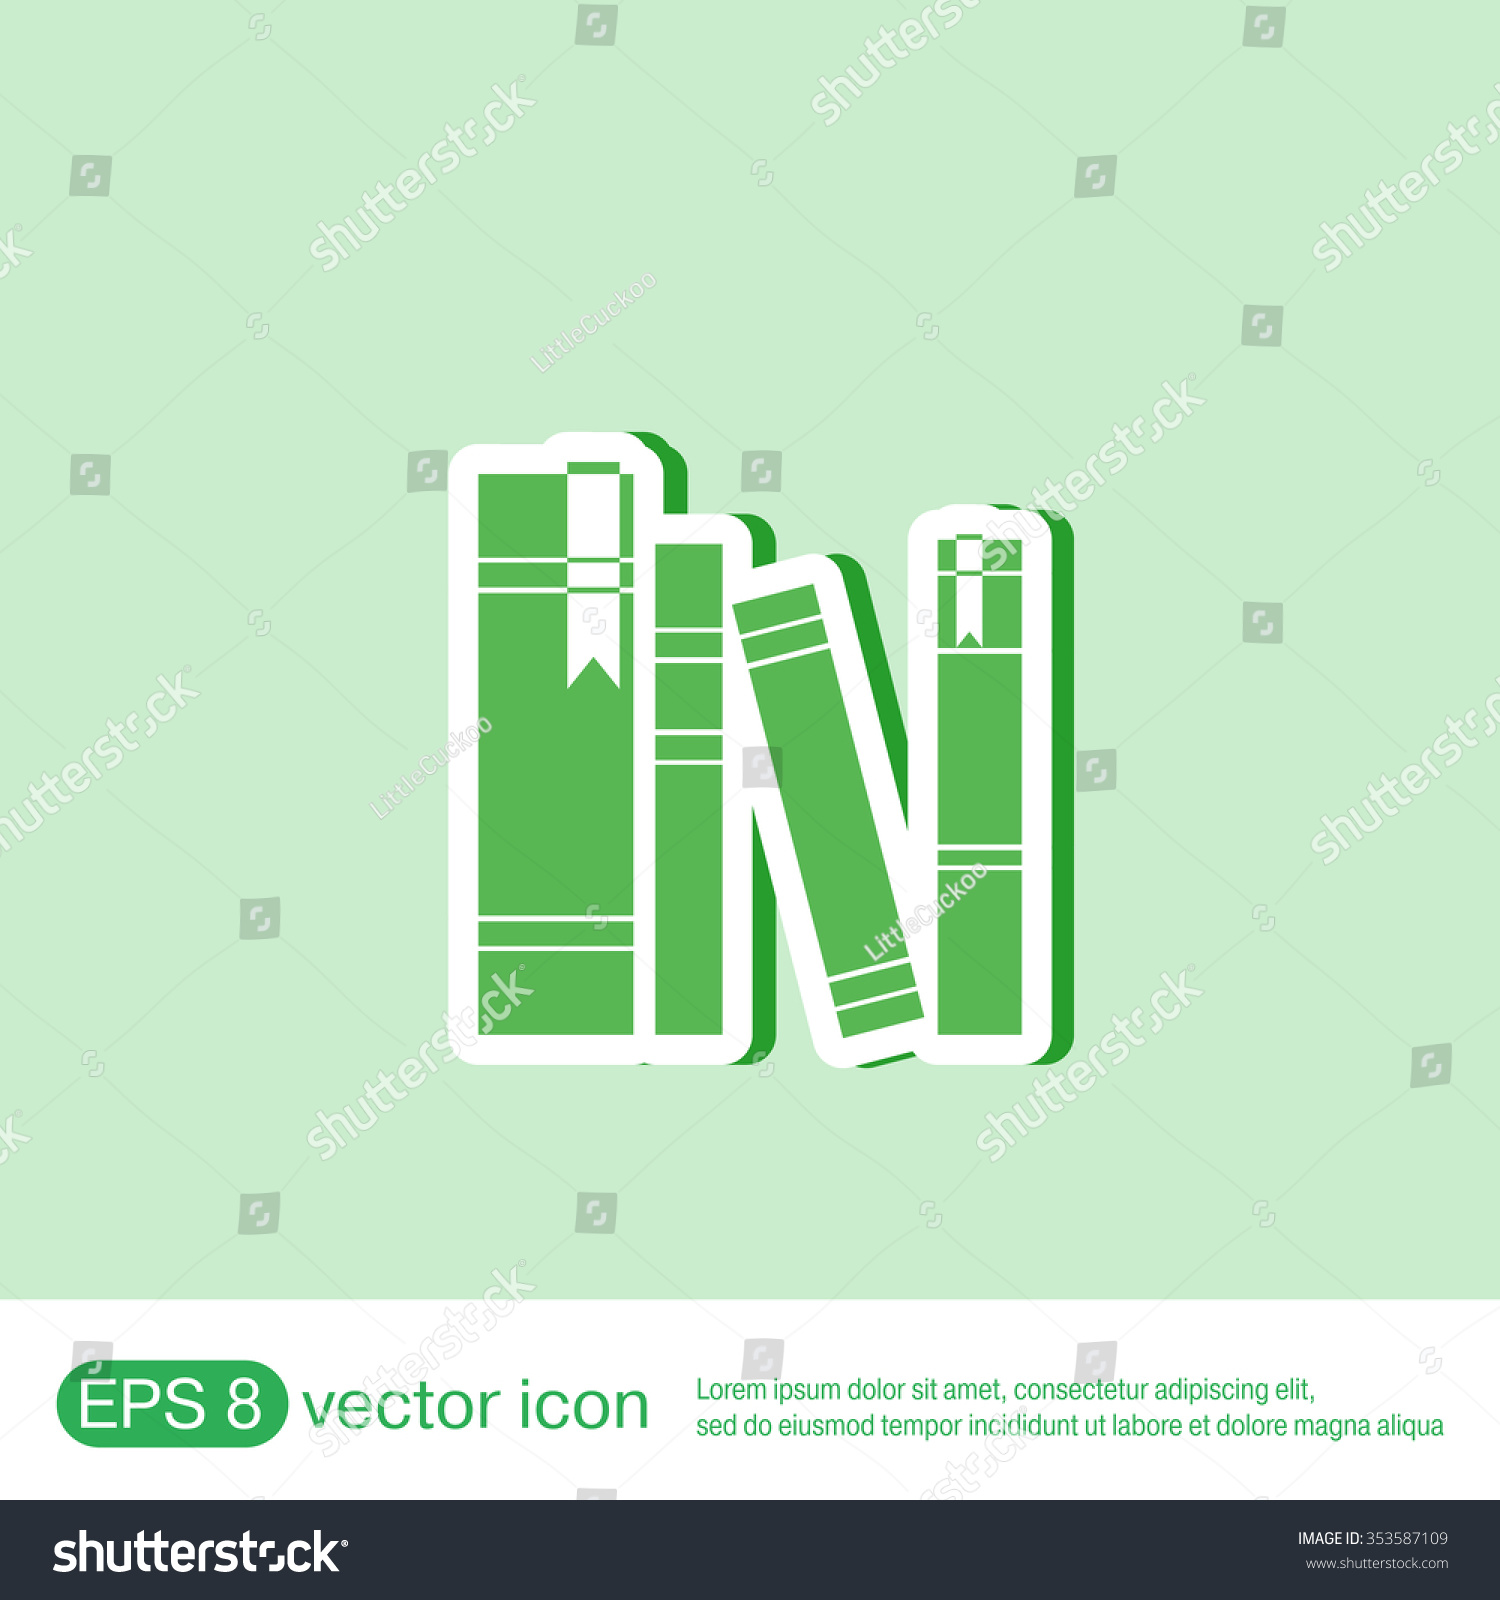 Book Spine Spines Books Icon Symbol Stock Vector 353587109